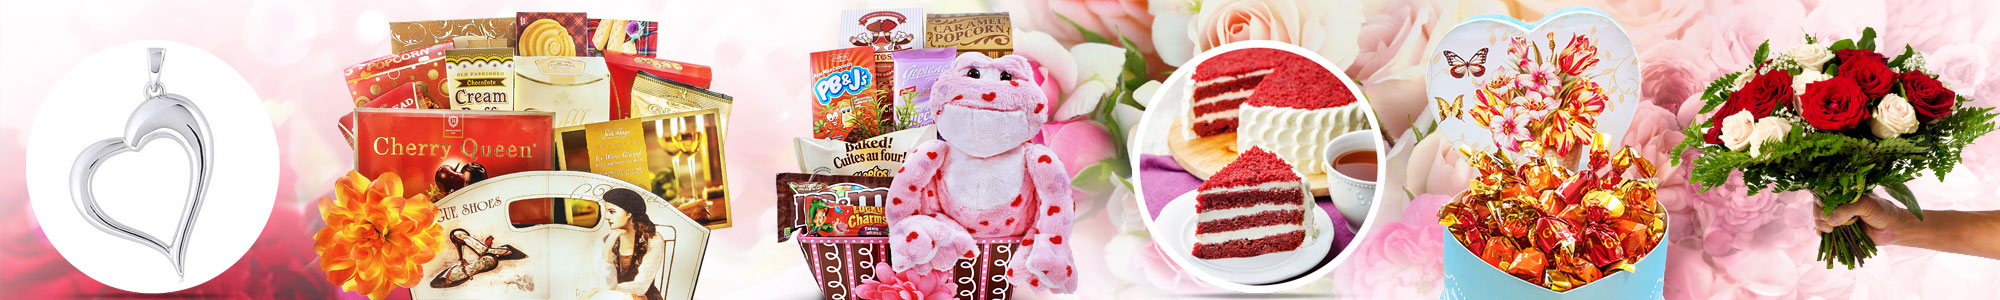 Valentine's Day gifts by Gourmet Gift Basket Store